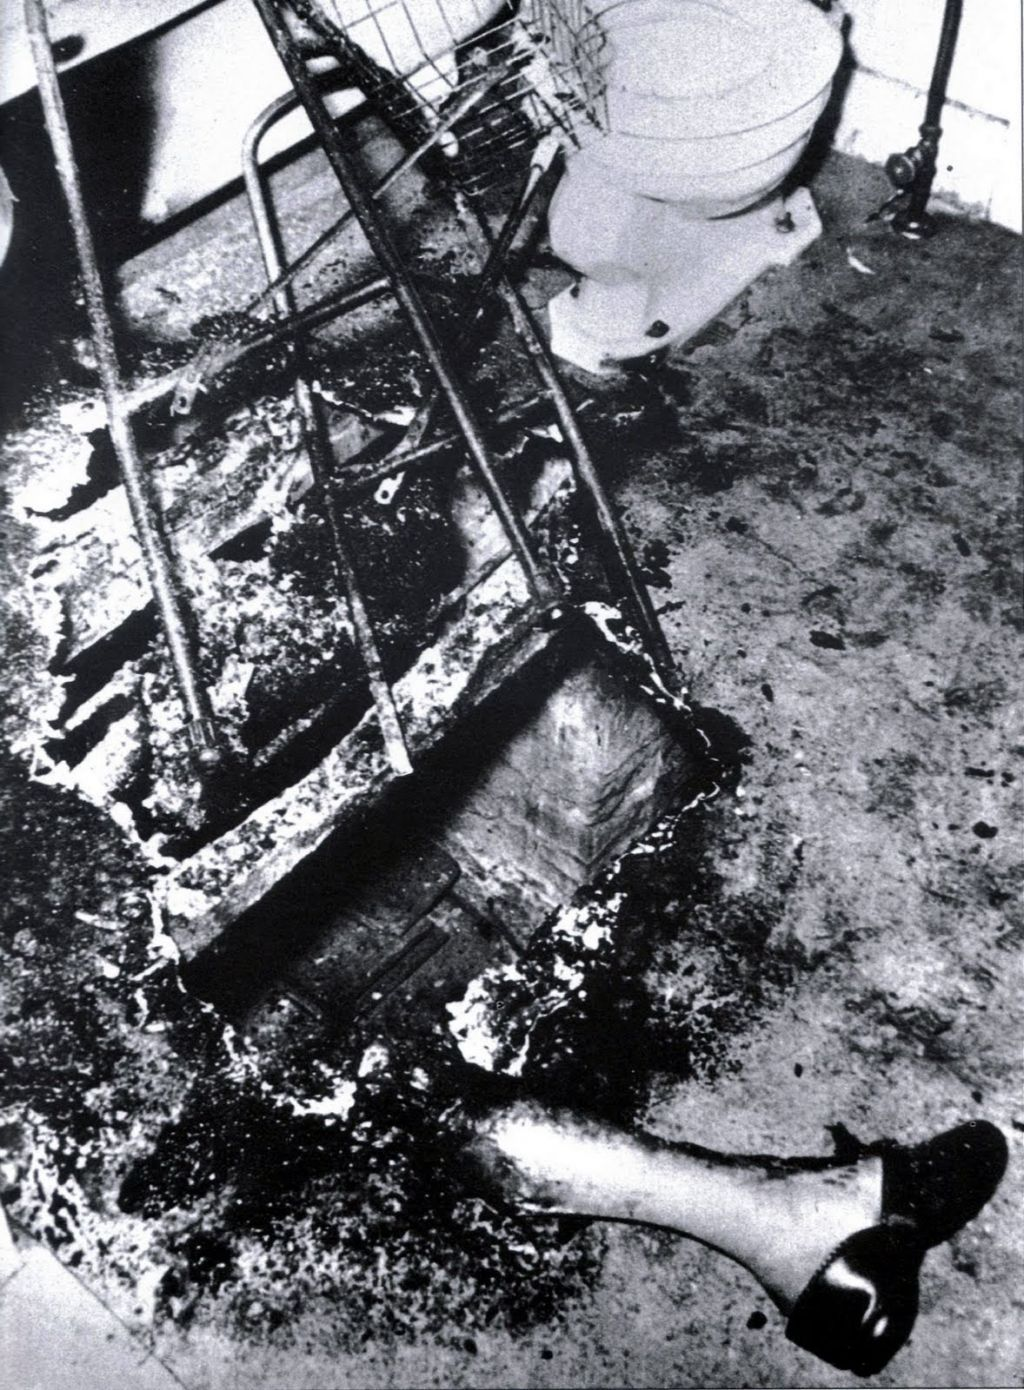 essay on spontaneous human combustion Spontaneous human combustion term paper while the free essays can give you inspiration for writing, they cannot be used 'as is' because they will not meet your assignment's requirements.